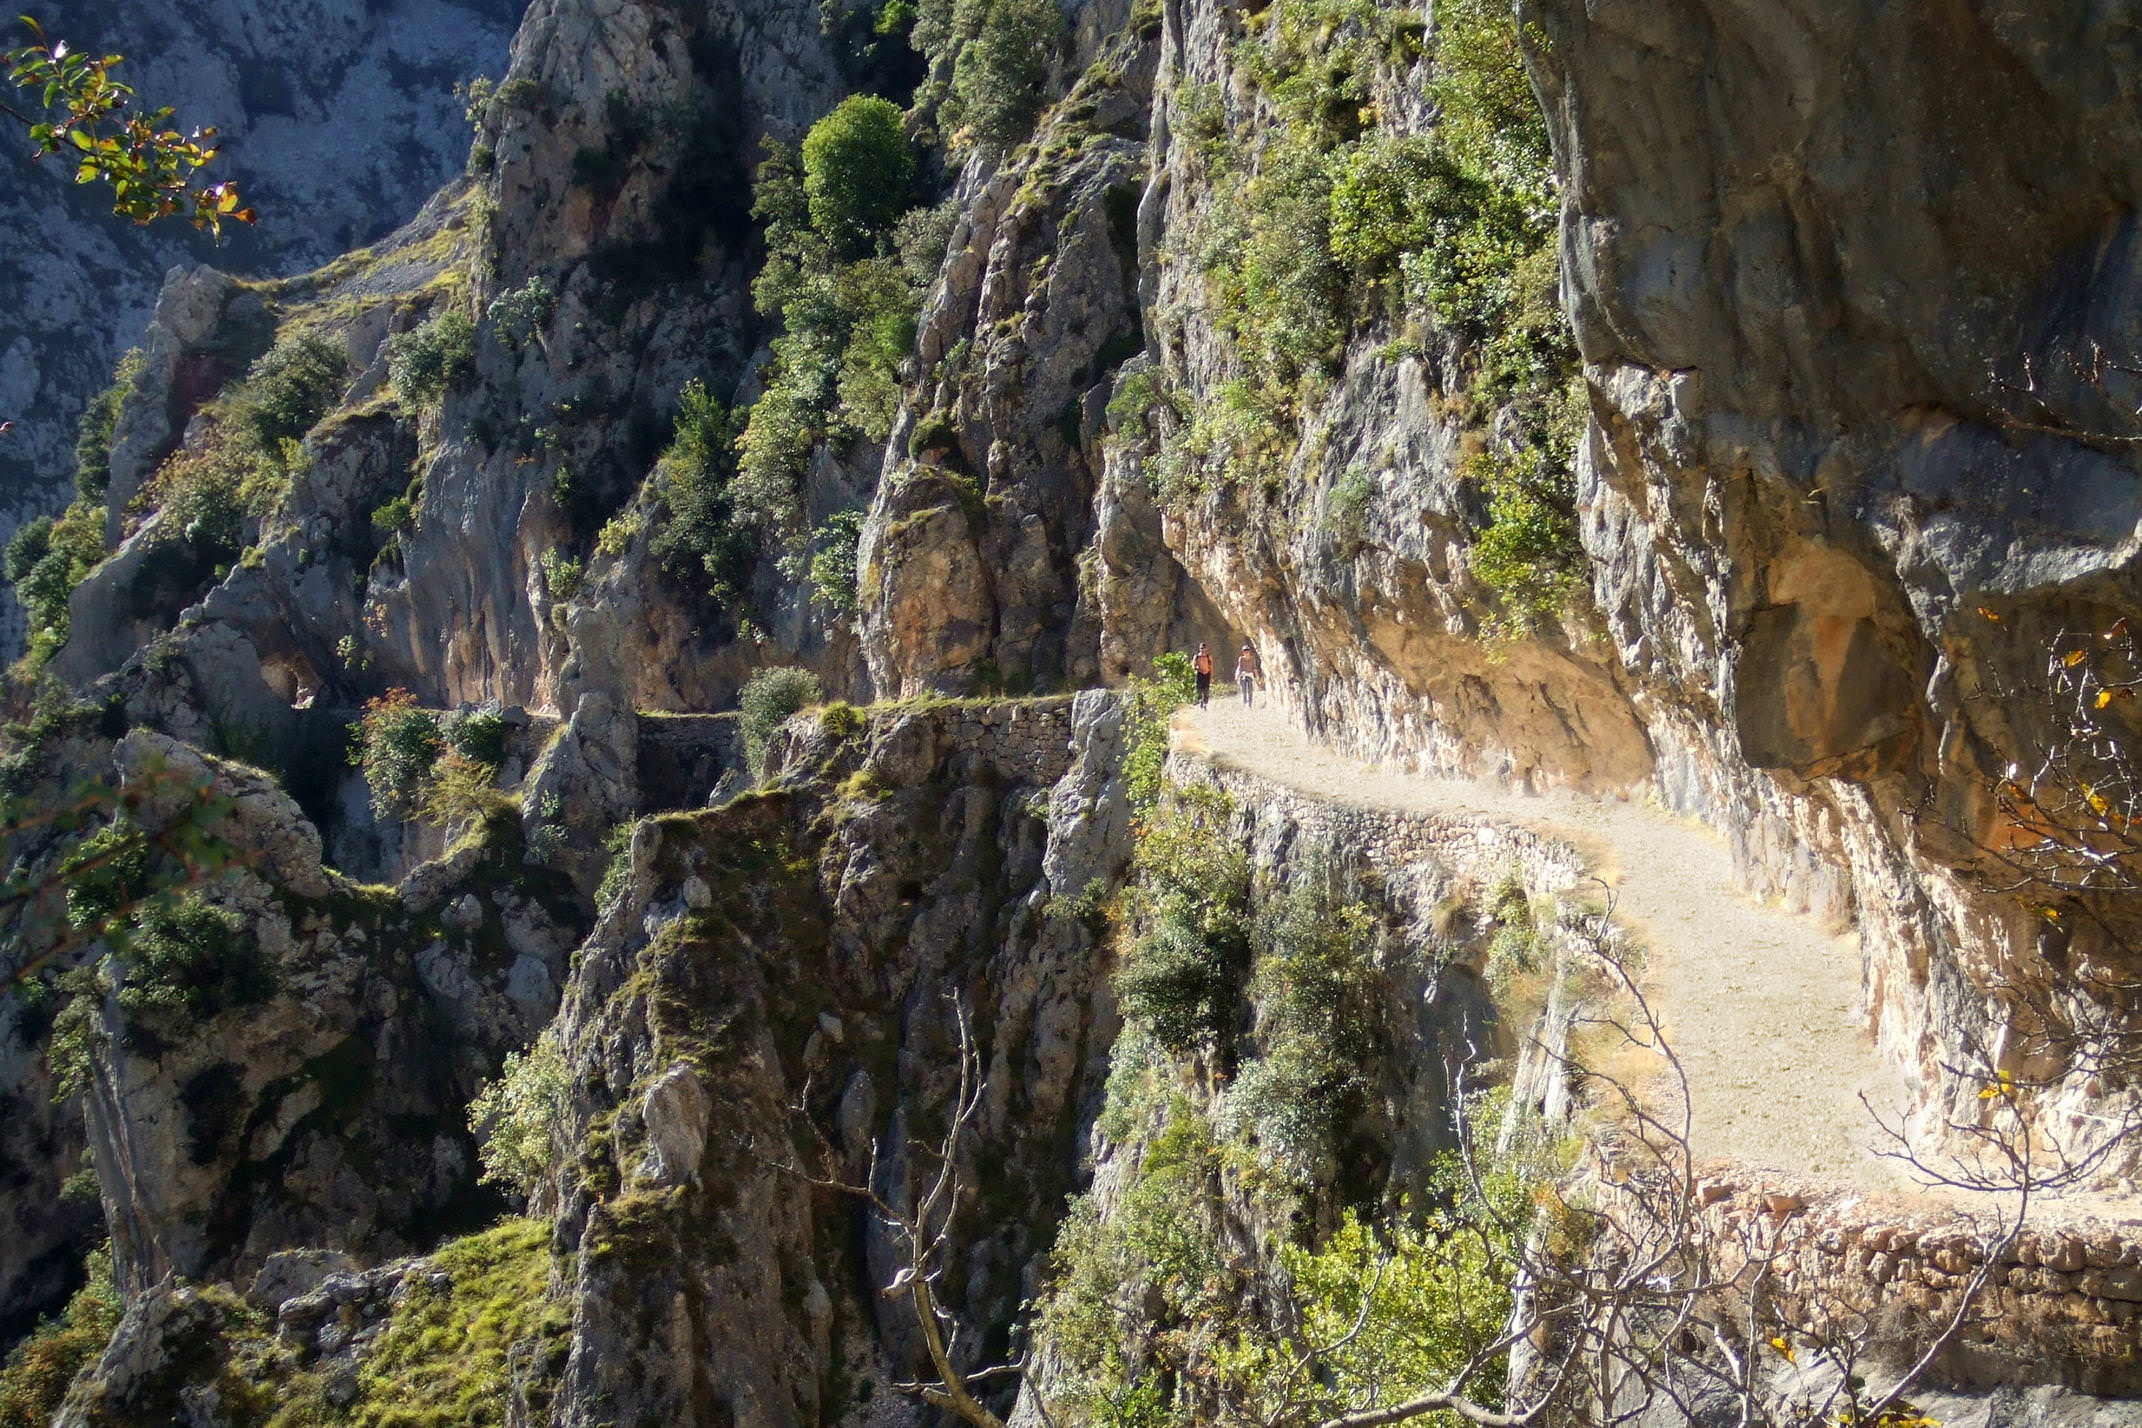 Spain picos de europa cares gorge pathway